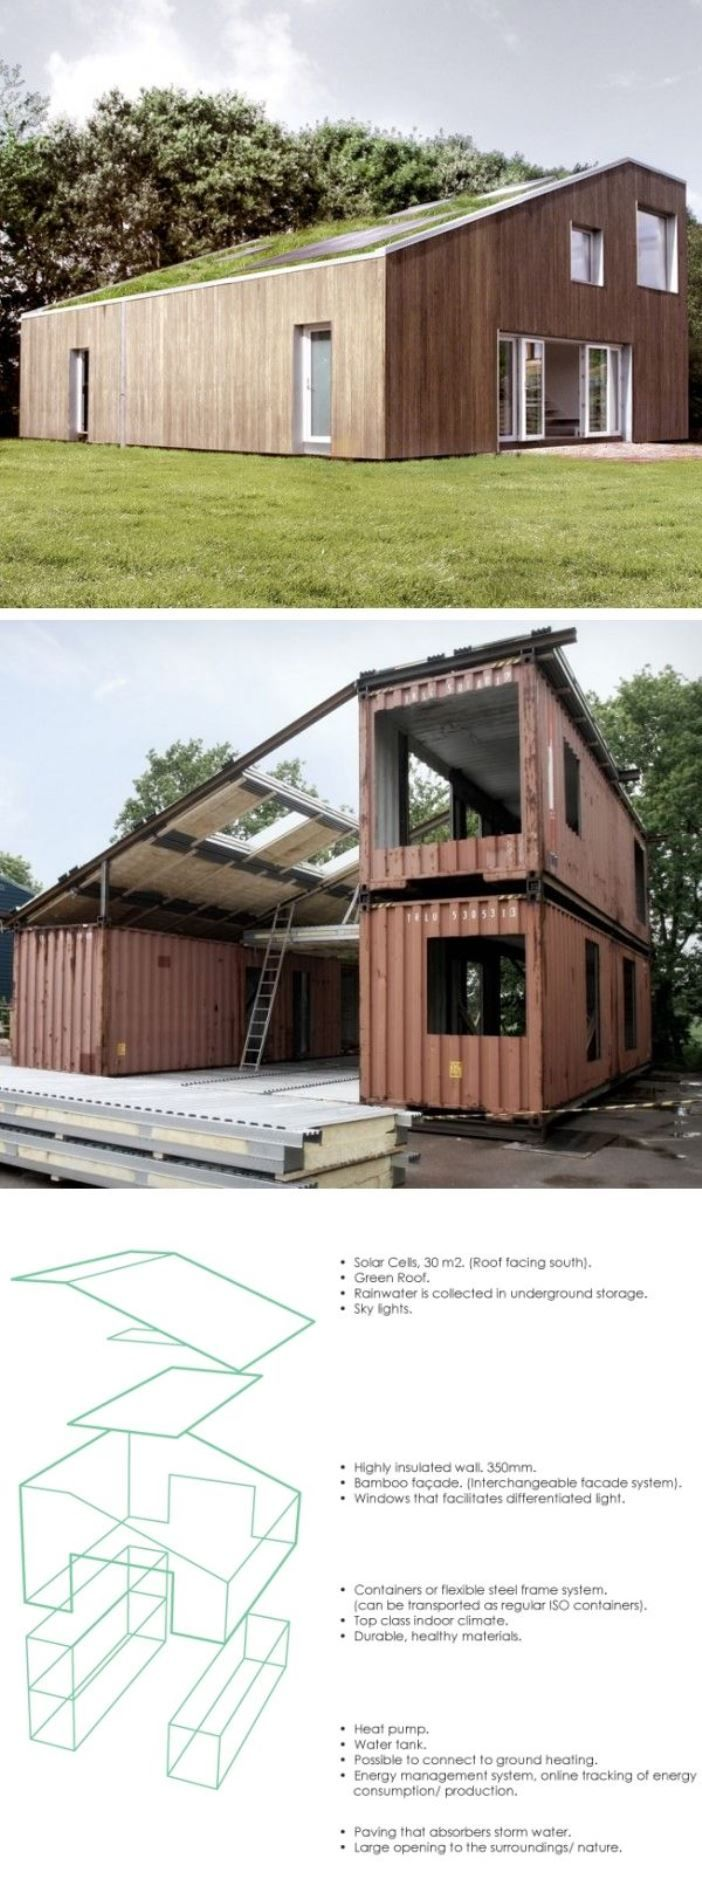 Best Kitchen Gallery: Shipping Container Home Green Roof Wfh Green Roofs Natural of Solar Shipping Container Home on rachelxblog.com